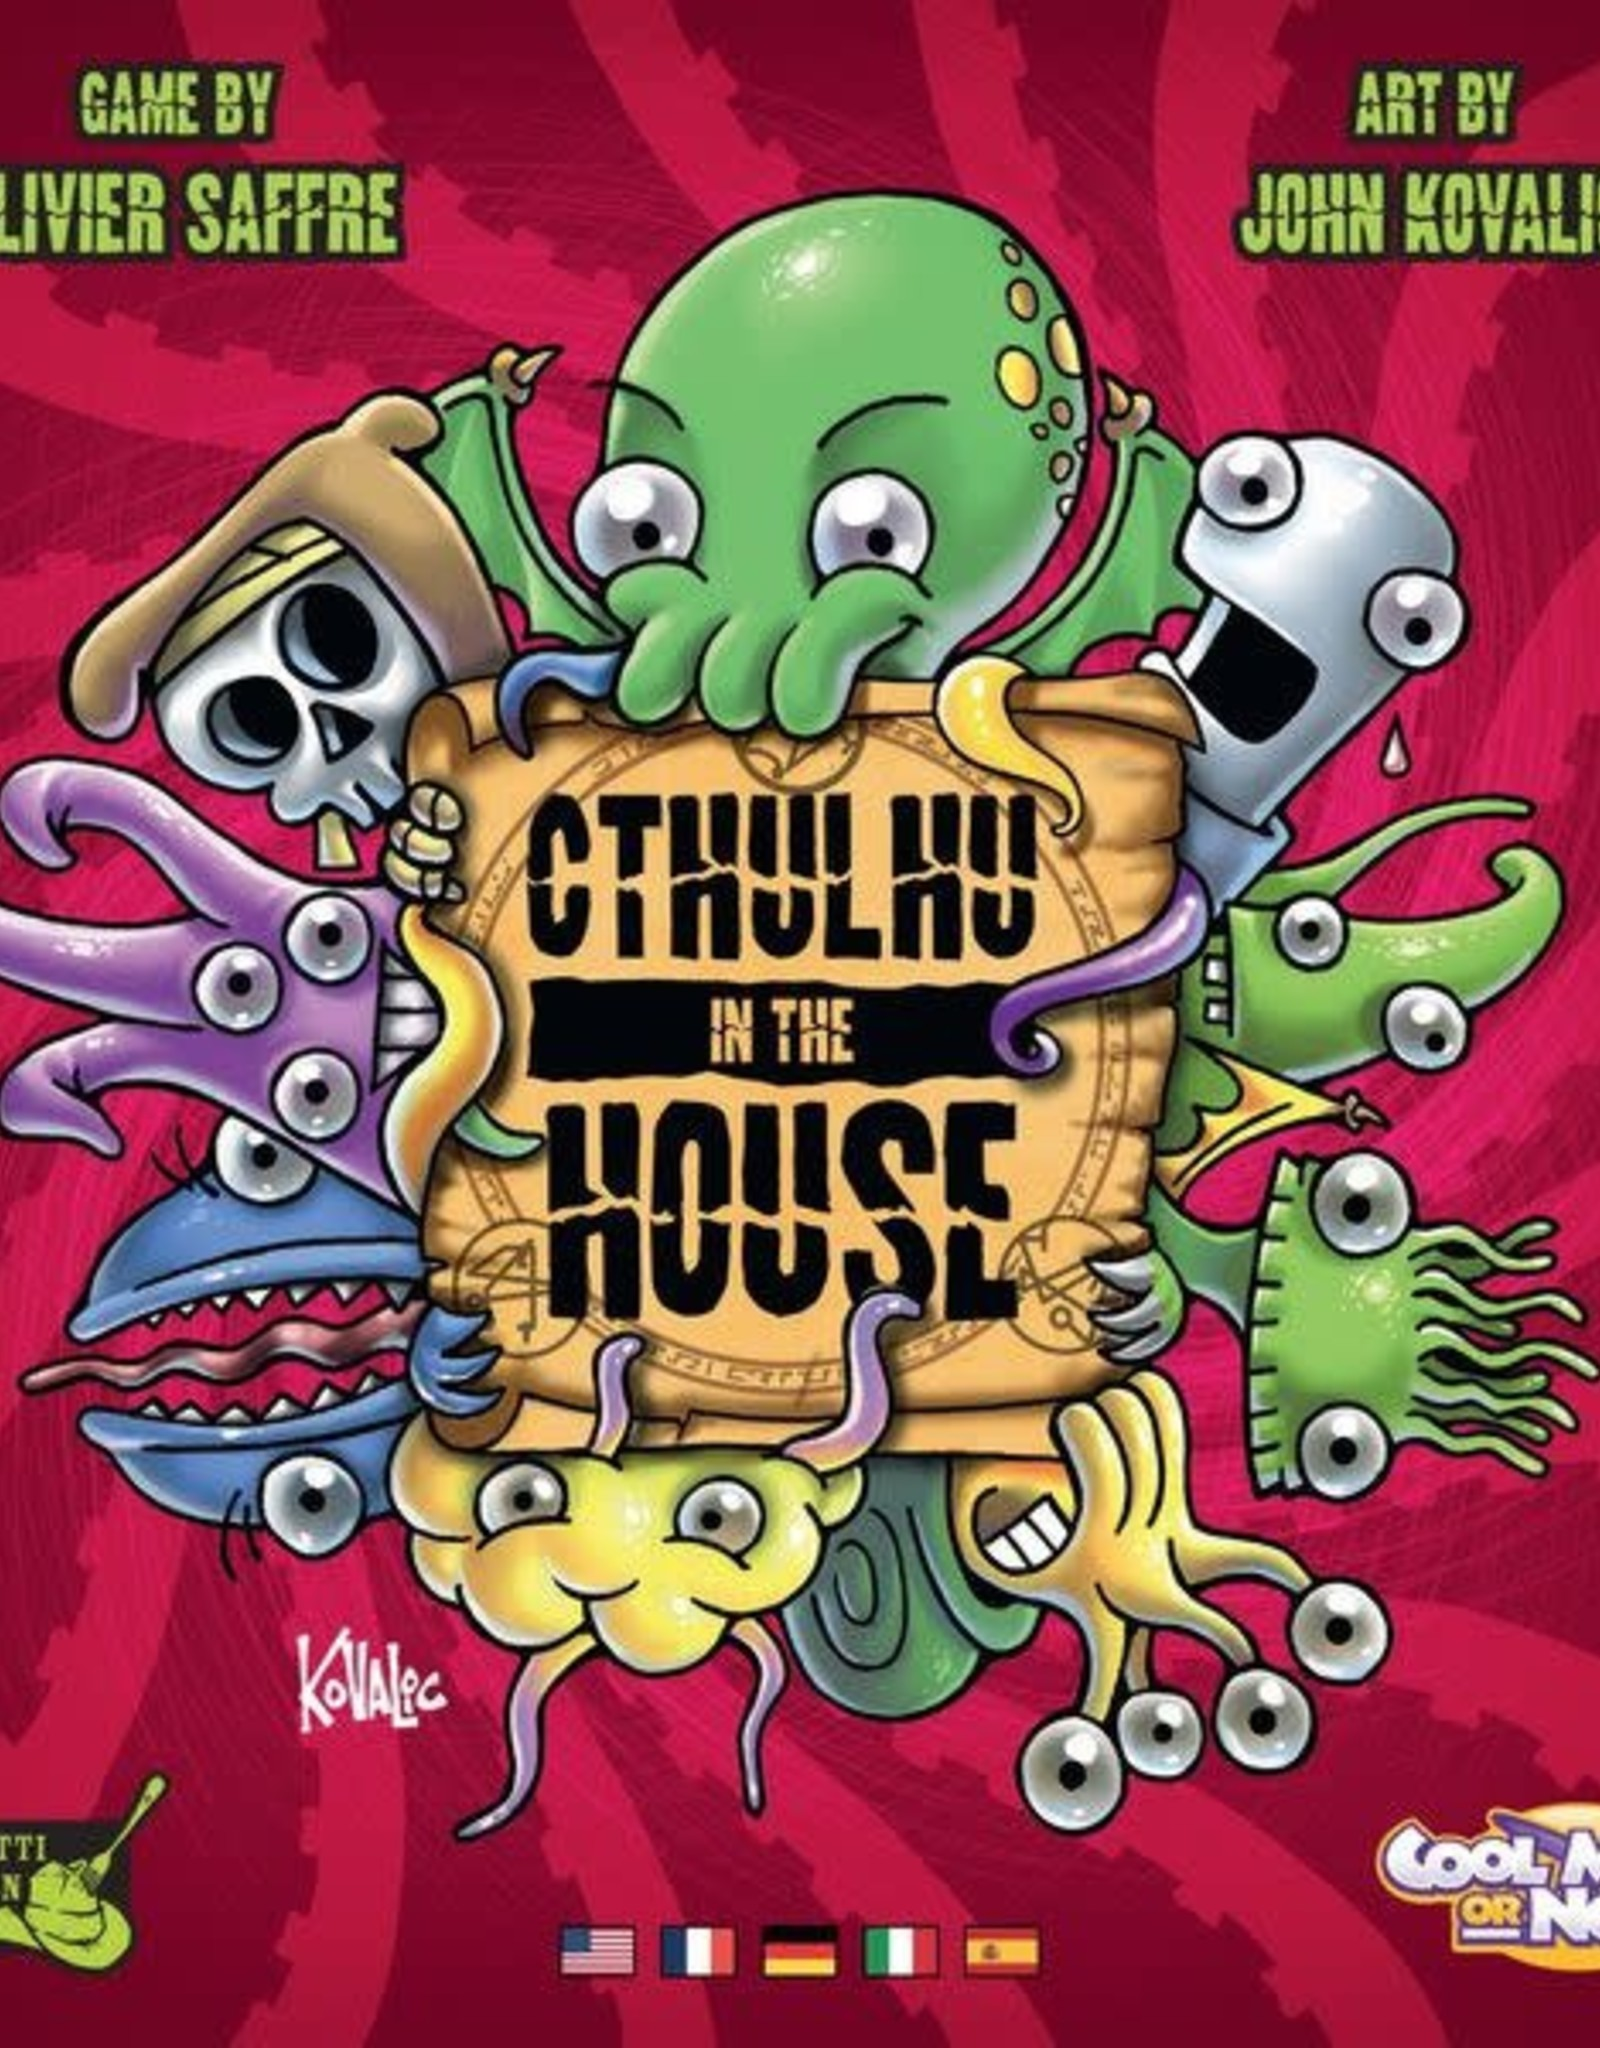 CMON Cthulhu In The House